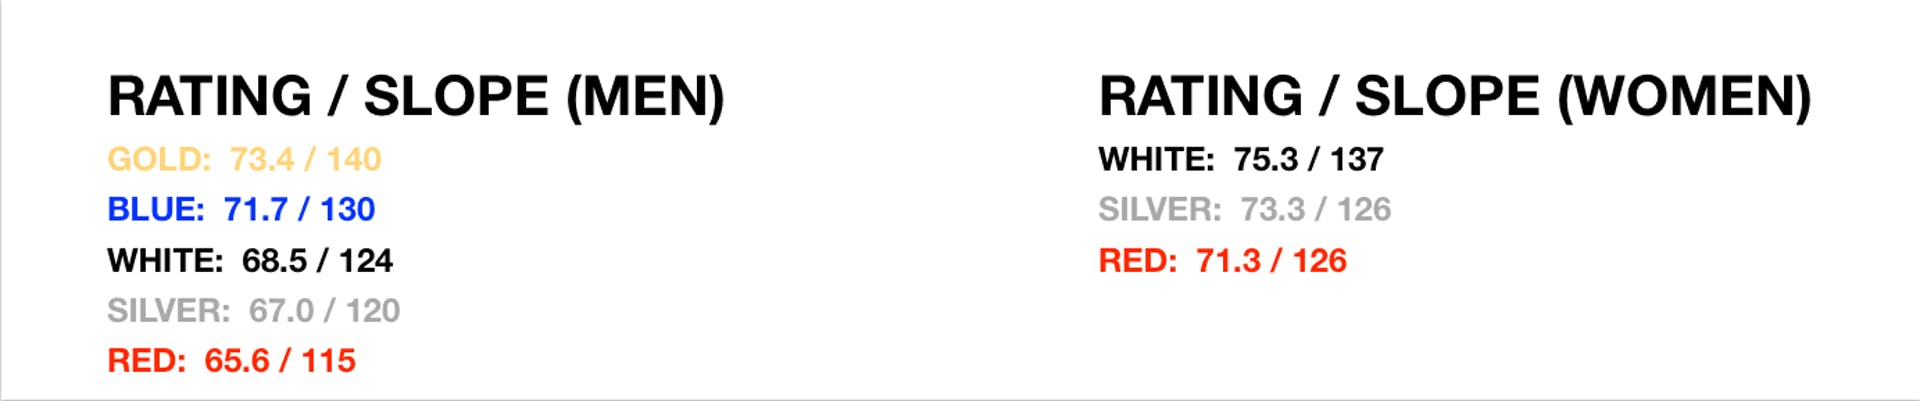 Rating / Slope (Men) Gold 73.4/140 Blue 71.7/130 White 68.5/124 Silver 67.0/120 Red 65.6/115 (Women) White 75.3/137 Silver 73.3/126 Red 71.3/126